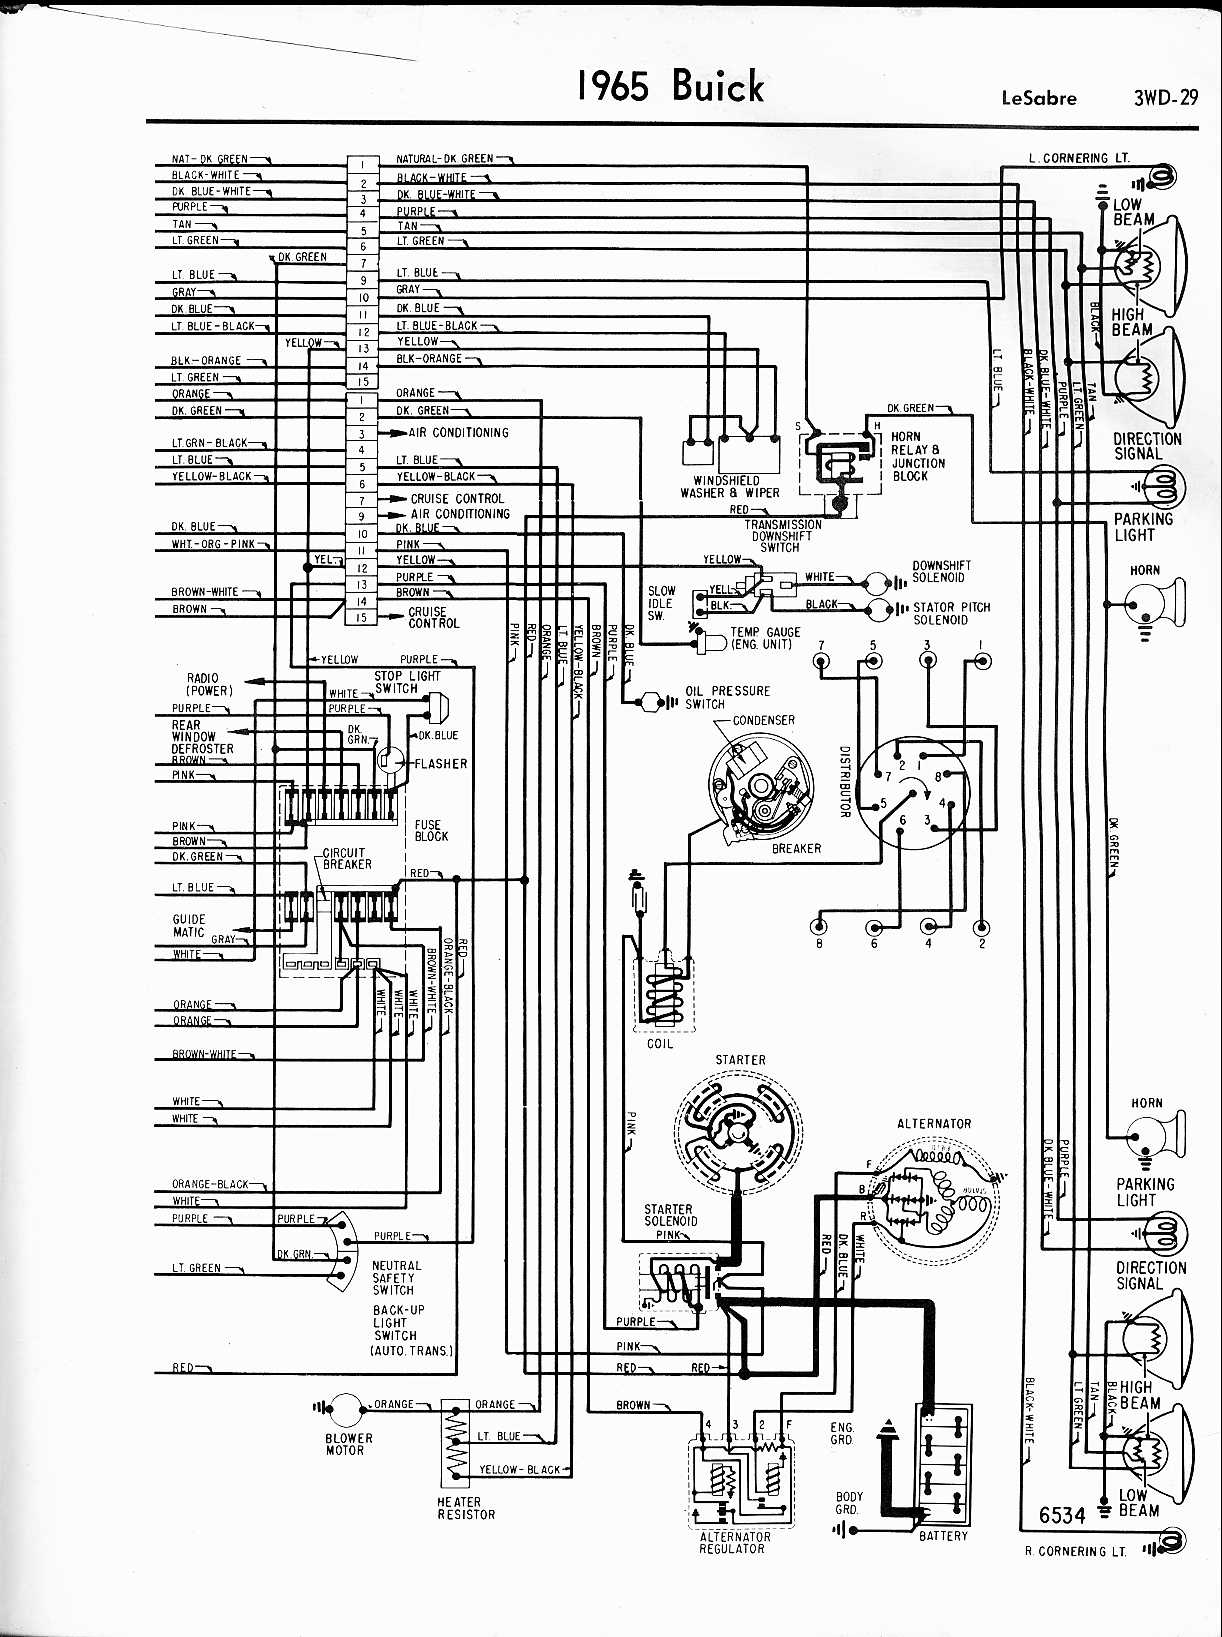 1968 Mustang Wiring Diagram Vacuum Schematics furthermore Index besides Buickindex besides 2003 Vw Passat Wiring Diagram 2 also 69 Mustang Ignition Wiring Diagram. on 1968 ford radio wiring